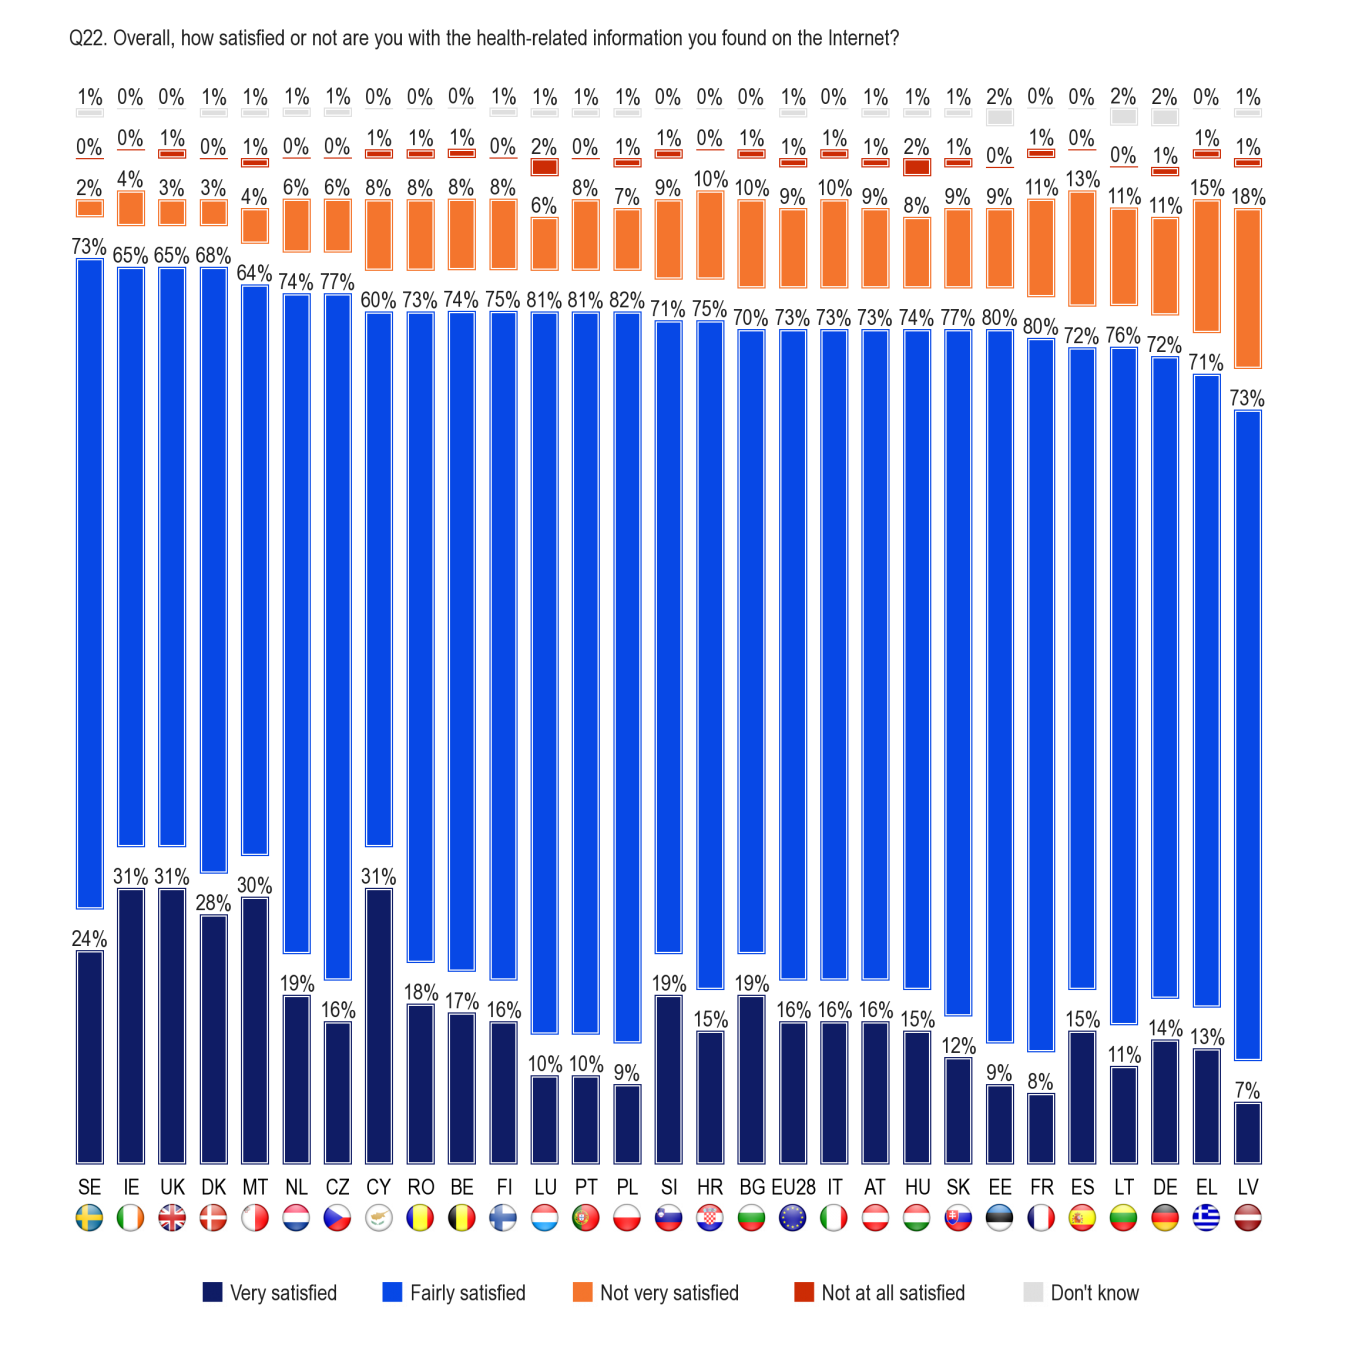 FLASH EUROBAROMETER Base: Respondents that used the Internet to search for health-related information within the last 12 months (N=15598) According to the socio-demographic data: No significant